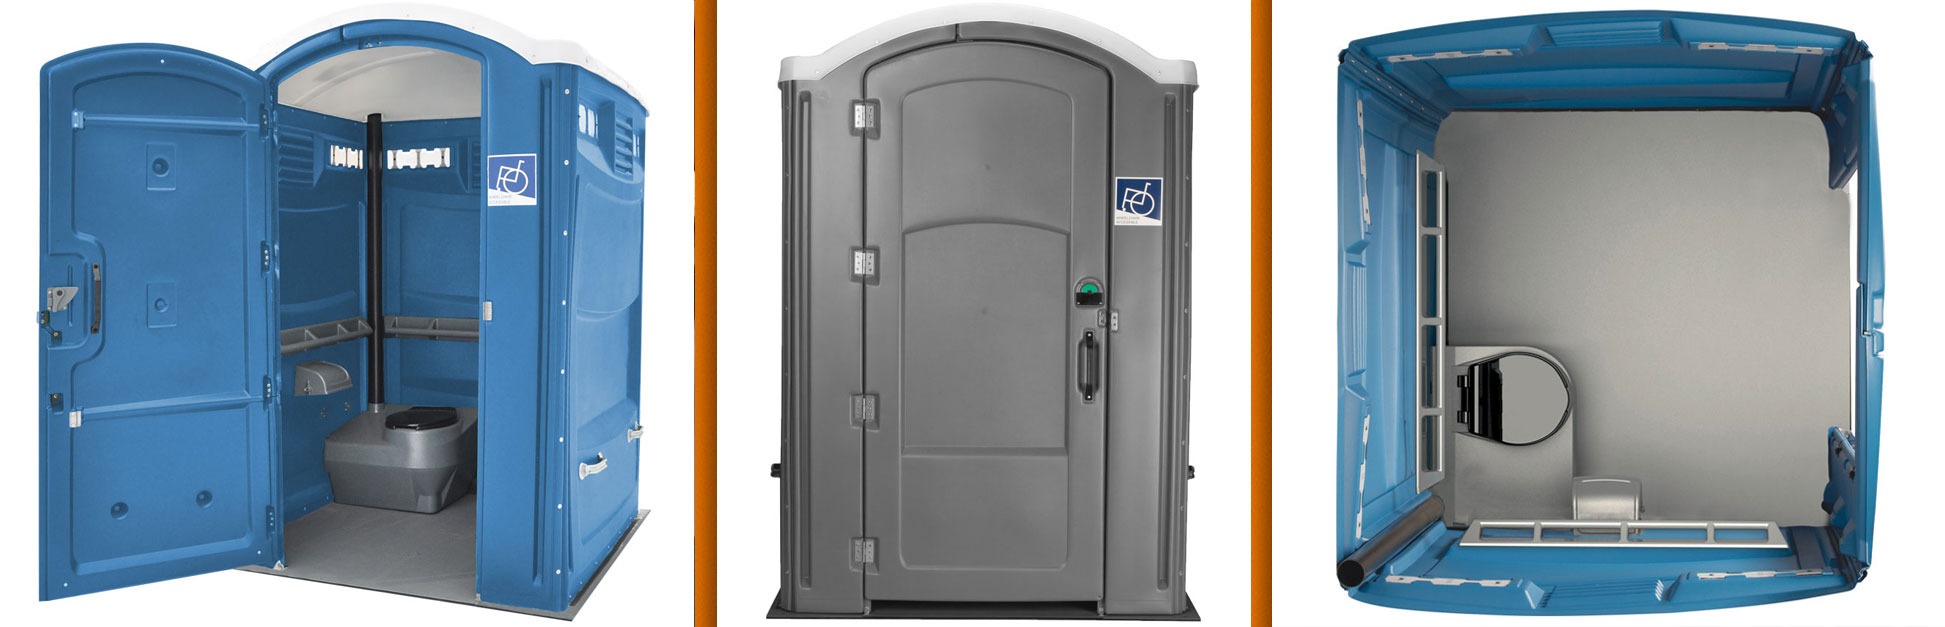 Non Ada Bathroom clean luxury portable restroom trailers | clean portable restrooms